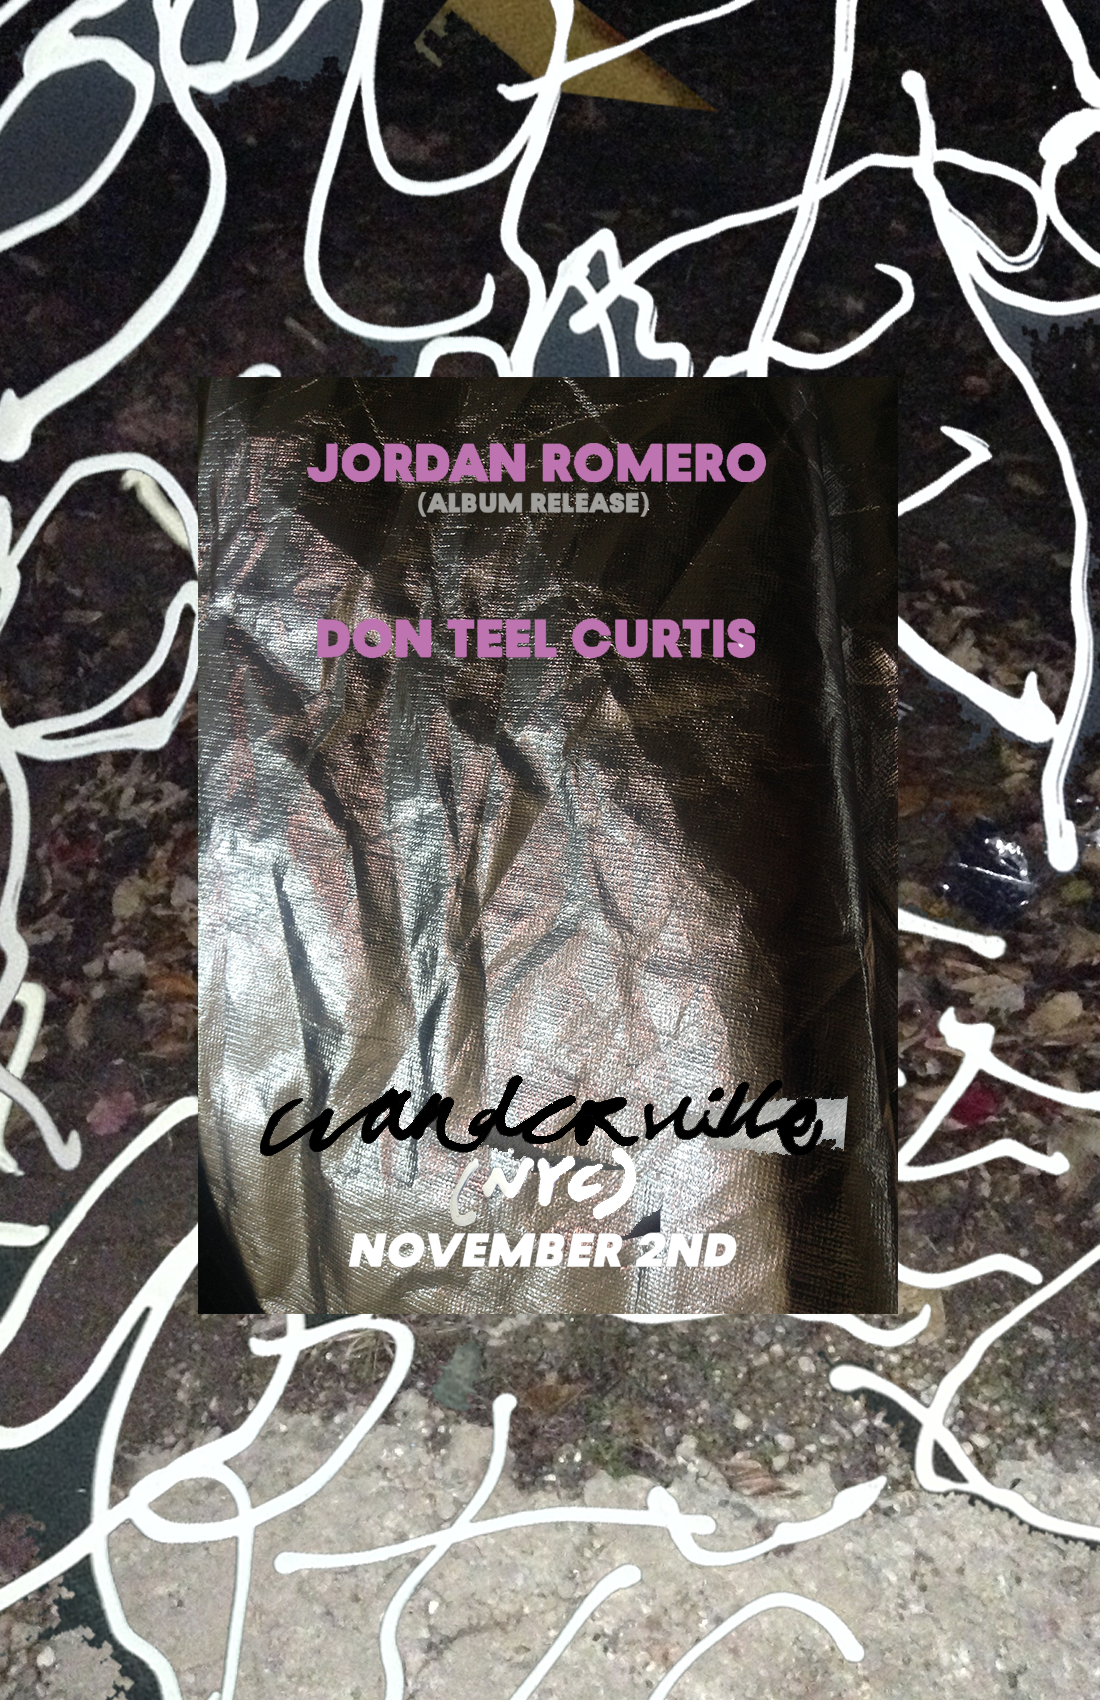 RSVP:  https://withfriends.co/event/2796371/jordan_romero_record_release_with_don_teel_curtis/